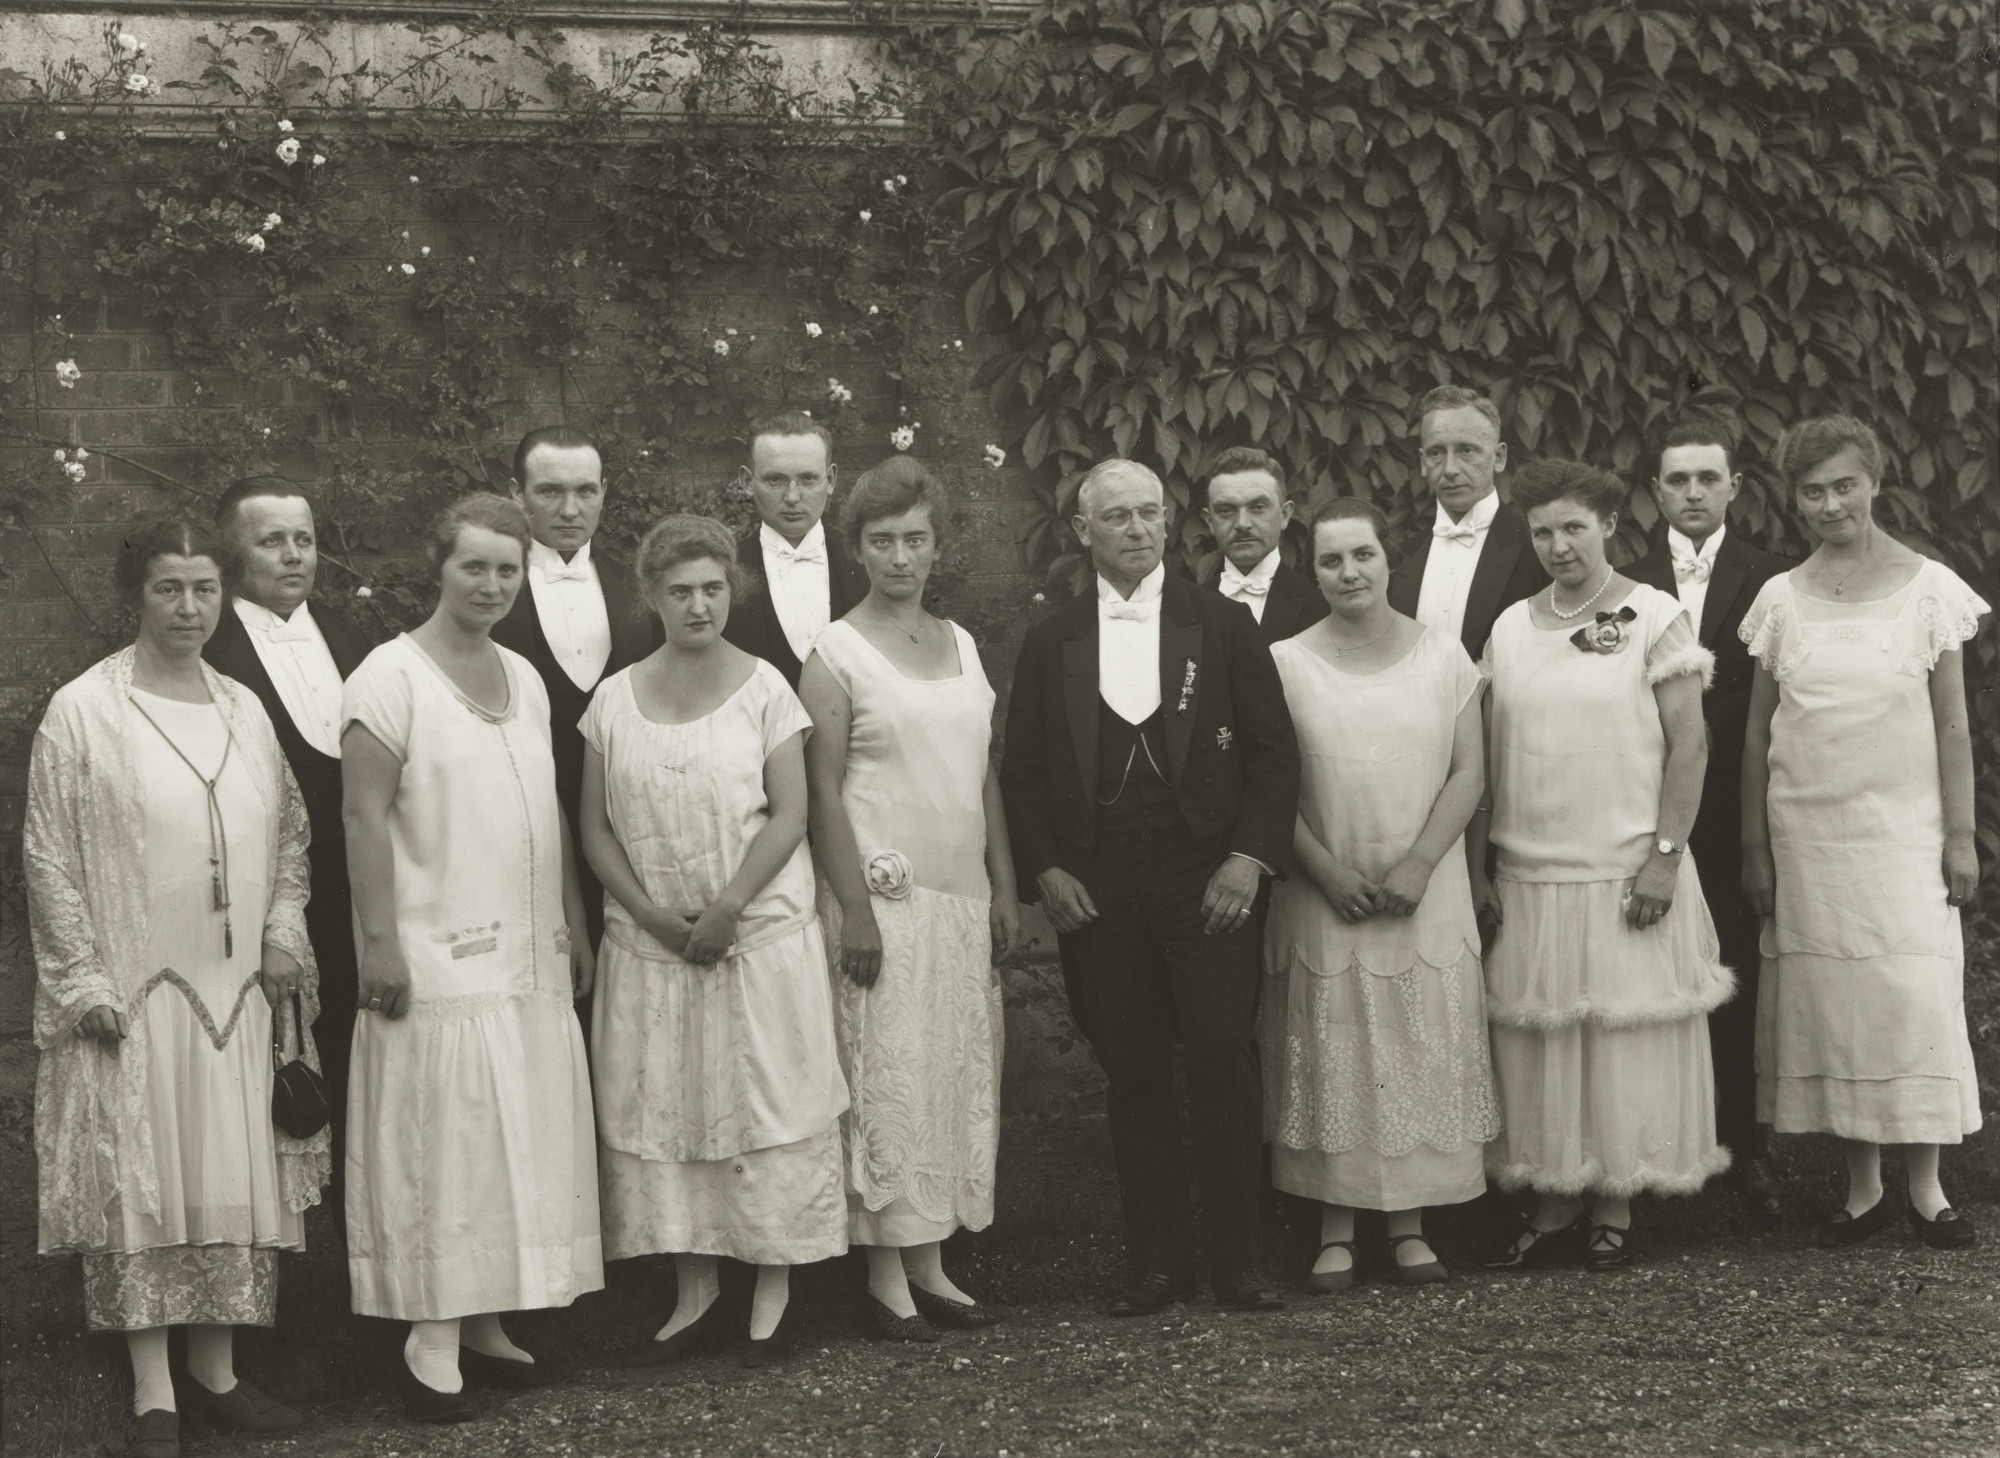 August Sander. Rhineland Madrigal Choir. 1925